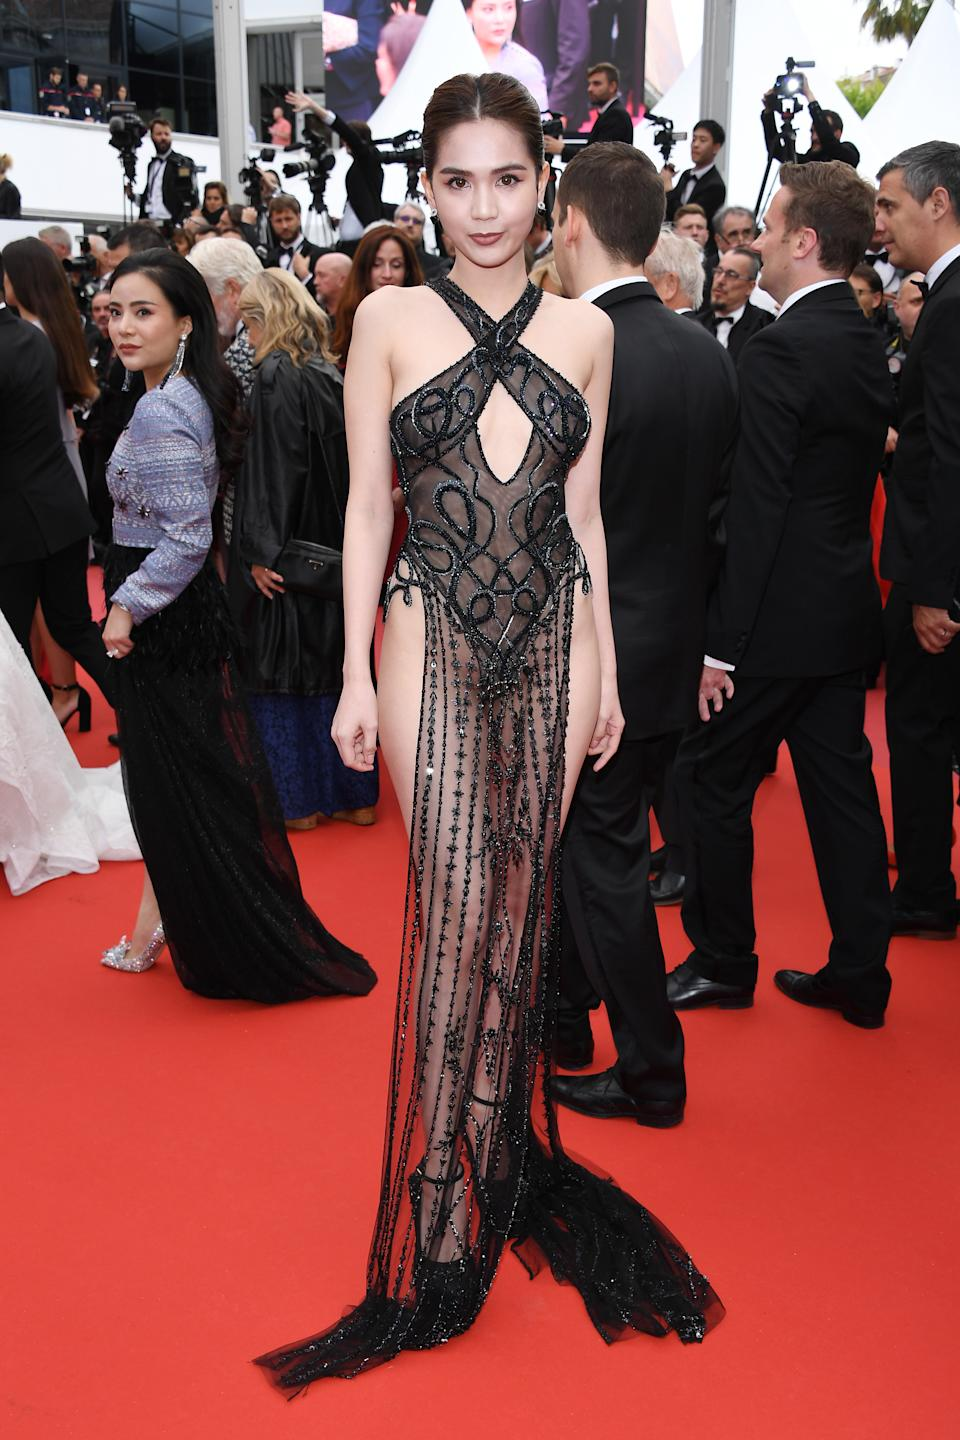 """CANNES, FRANCE - MAY 19: Ngoc Trinh attends the screening of """"A Hidden Life (Une Vie Cachée)"""" during the 72nd annual Cannes Film Festival on May 19, 2019 in Cannes, France. (Photo by Daniele Venturelli/WireImage)"""